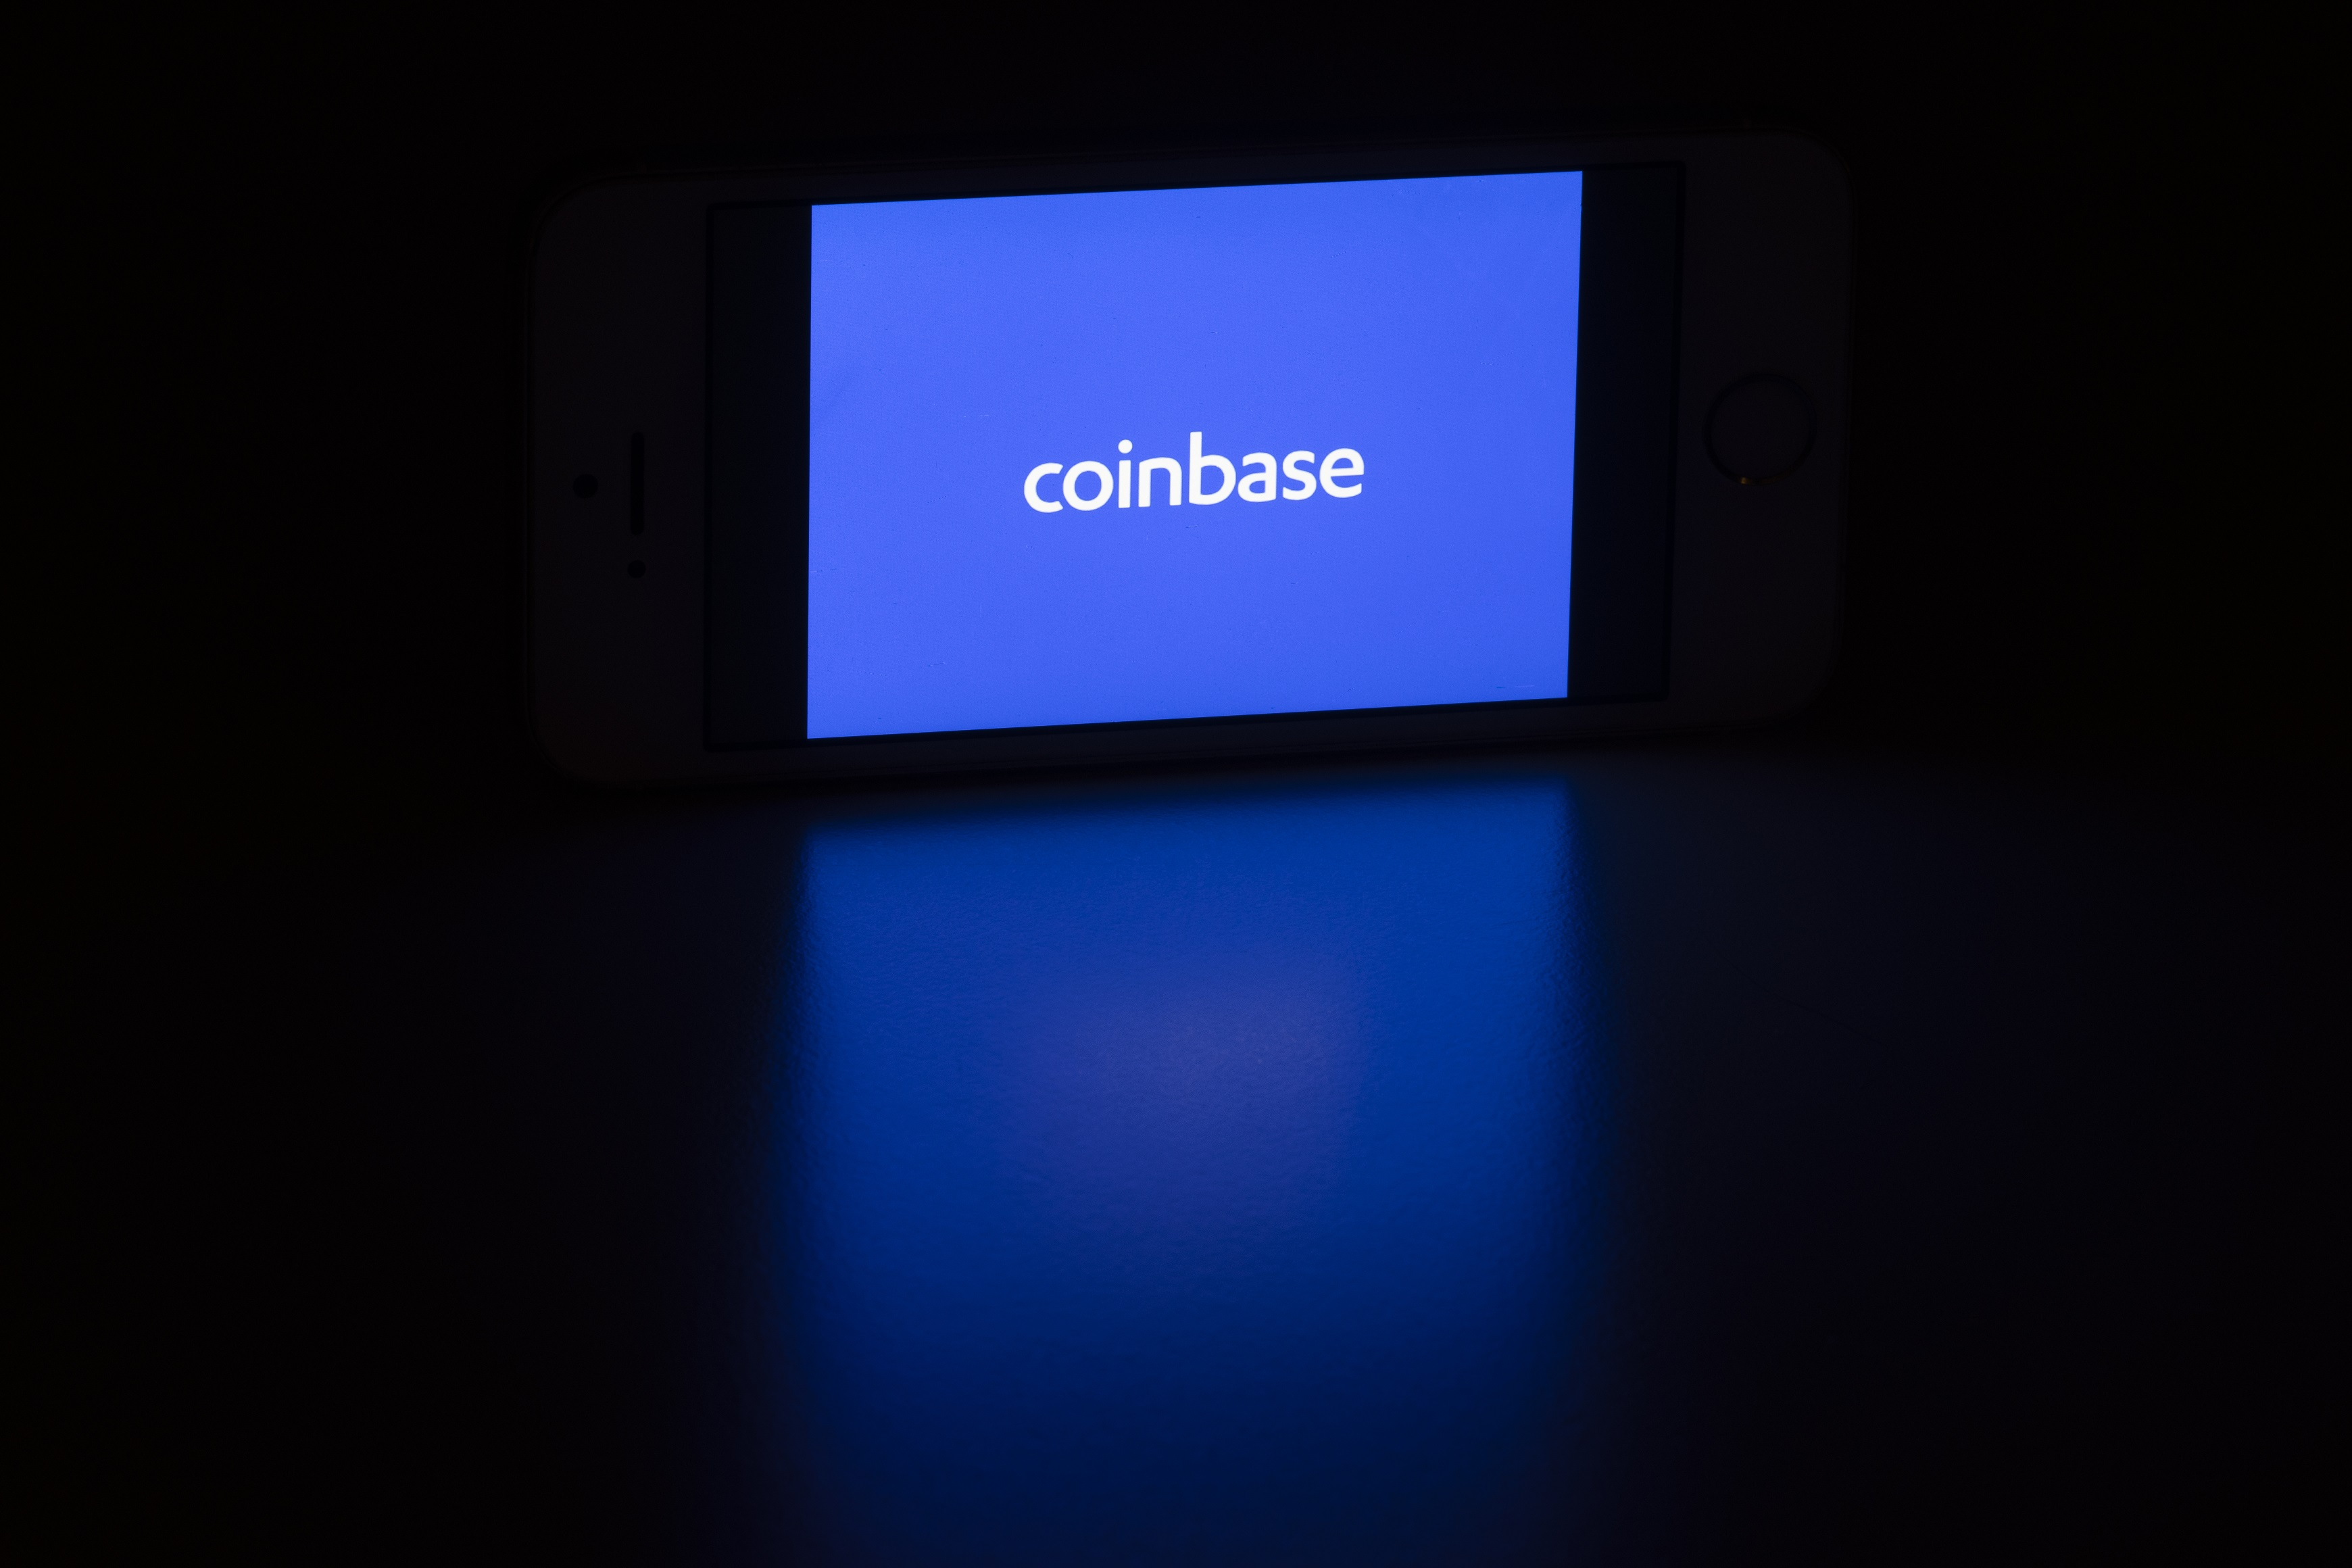 Coinbase Says It Aims to Improve Customer Service, Integration with Pro